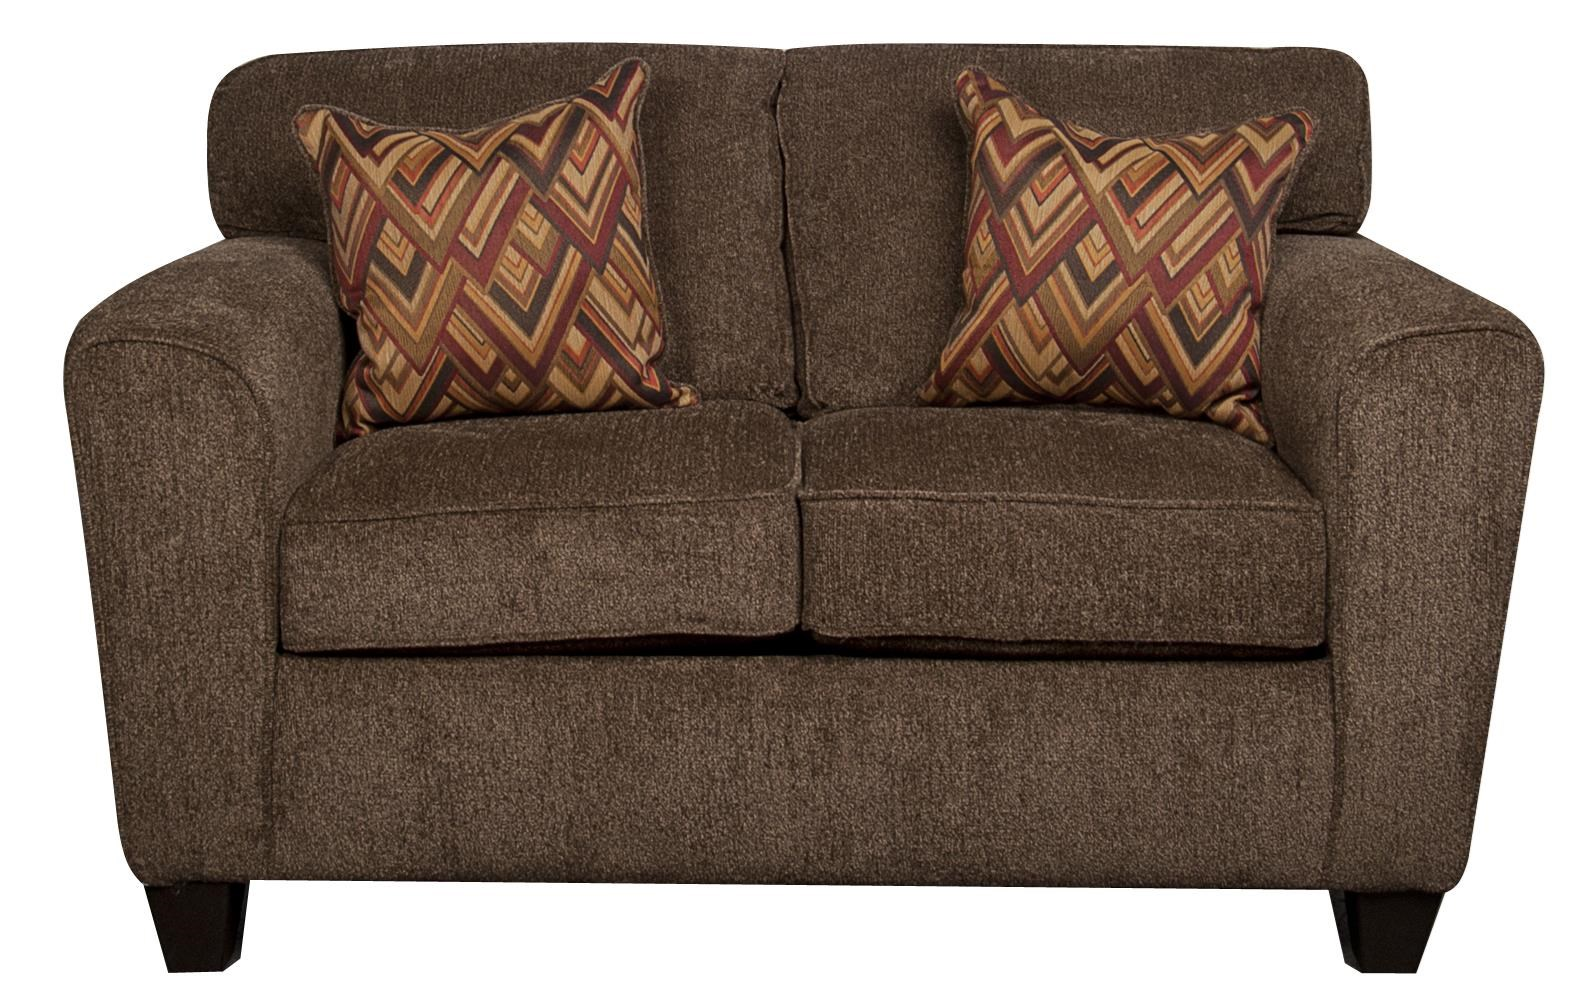 Morris Home Furnishings Wilson - Wilson Loveseat - Item Number: 529878300